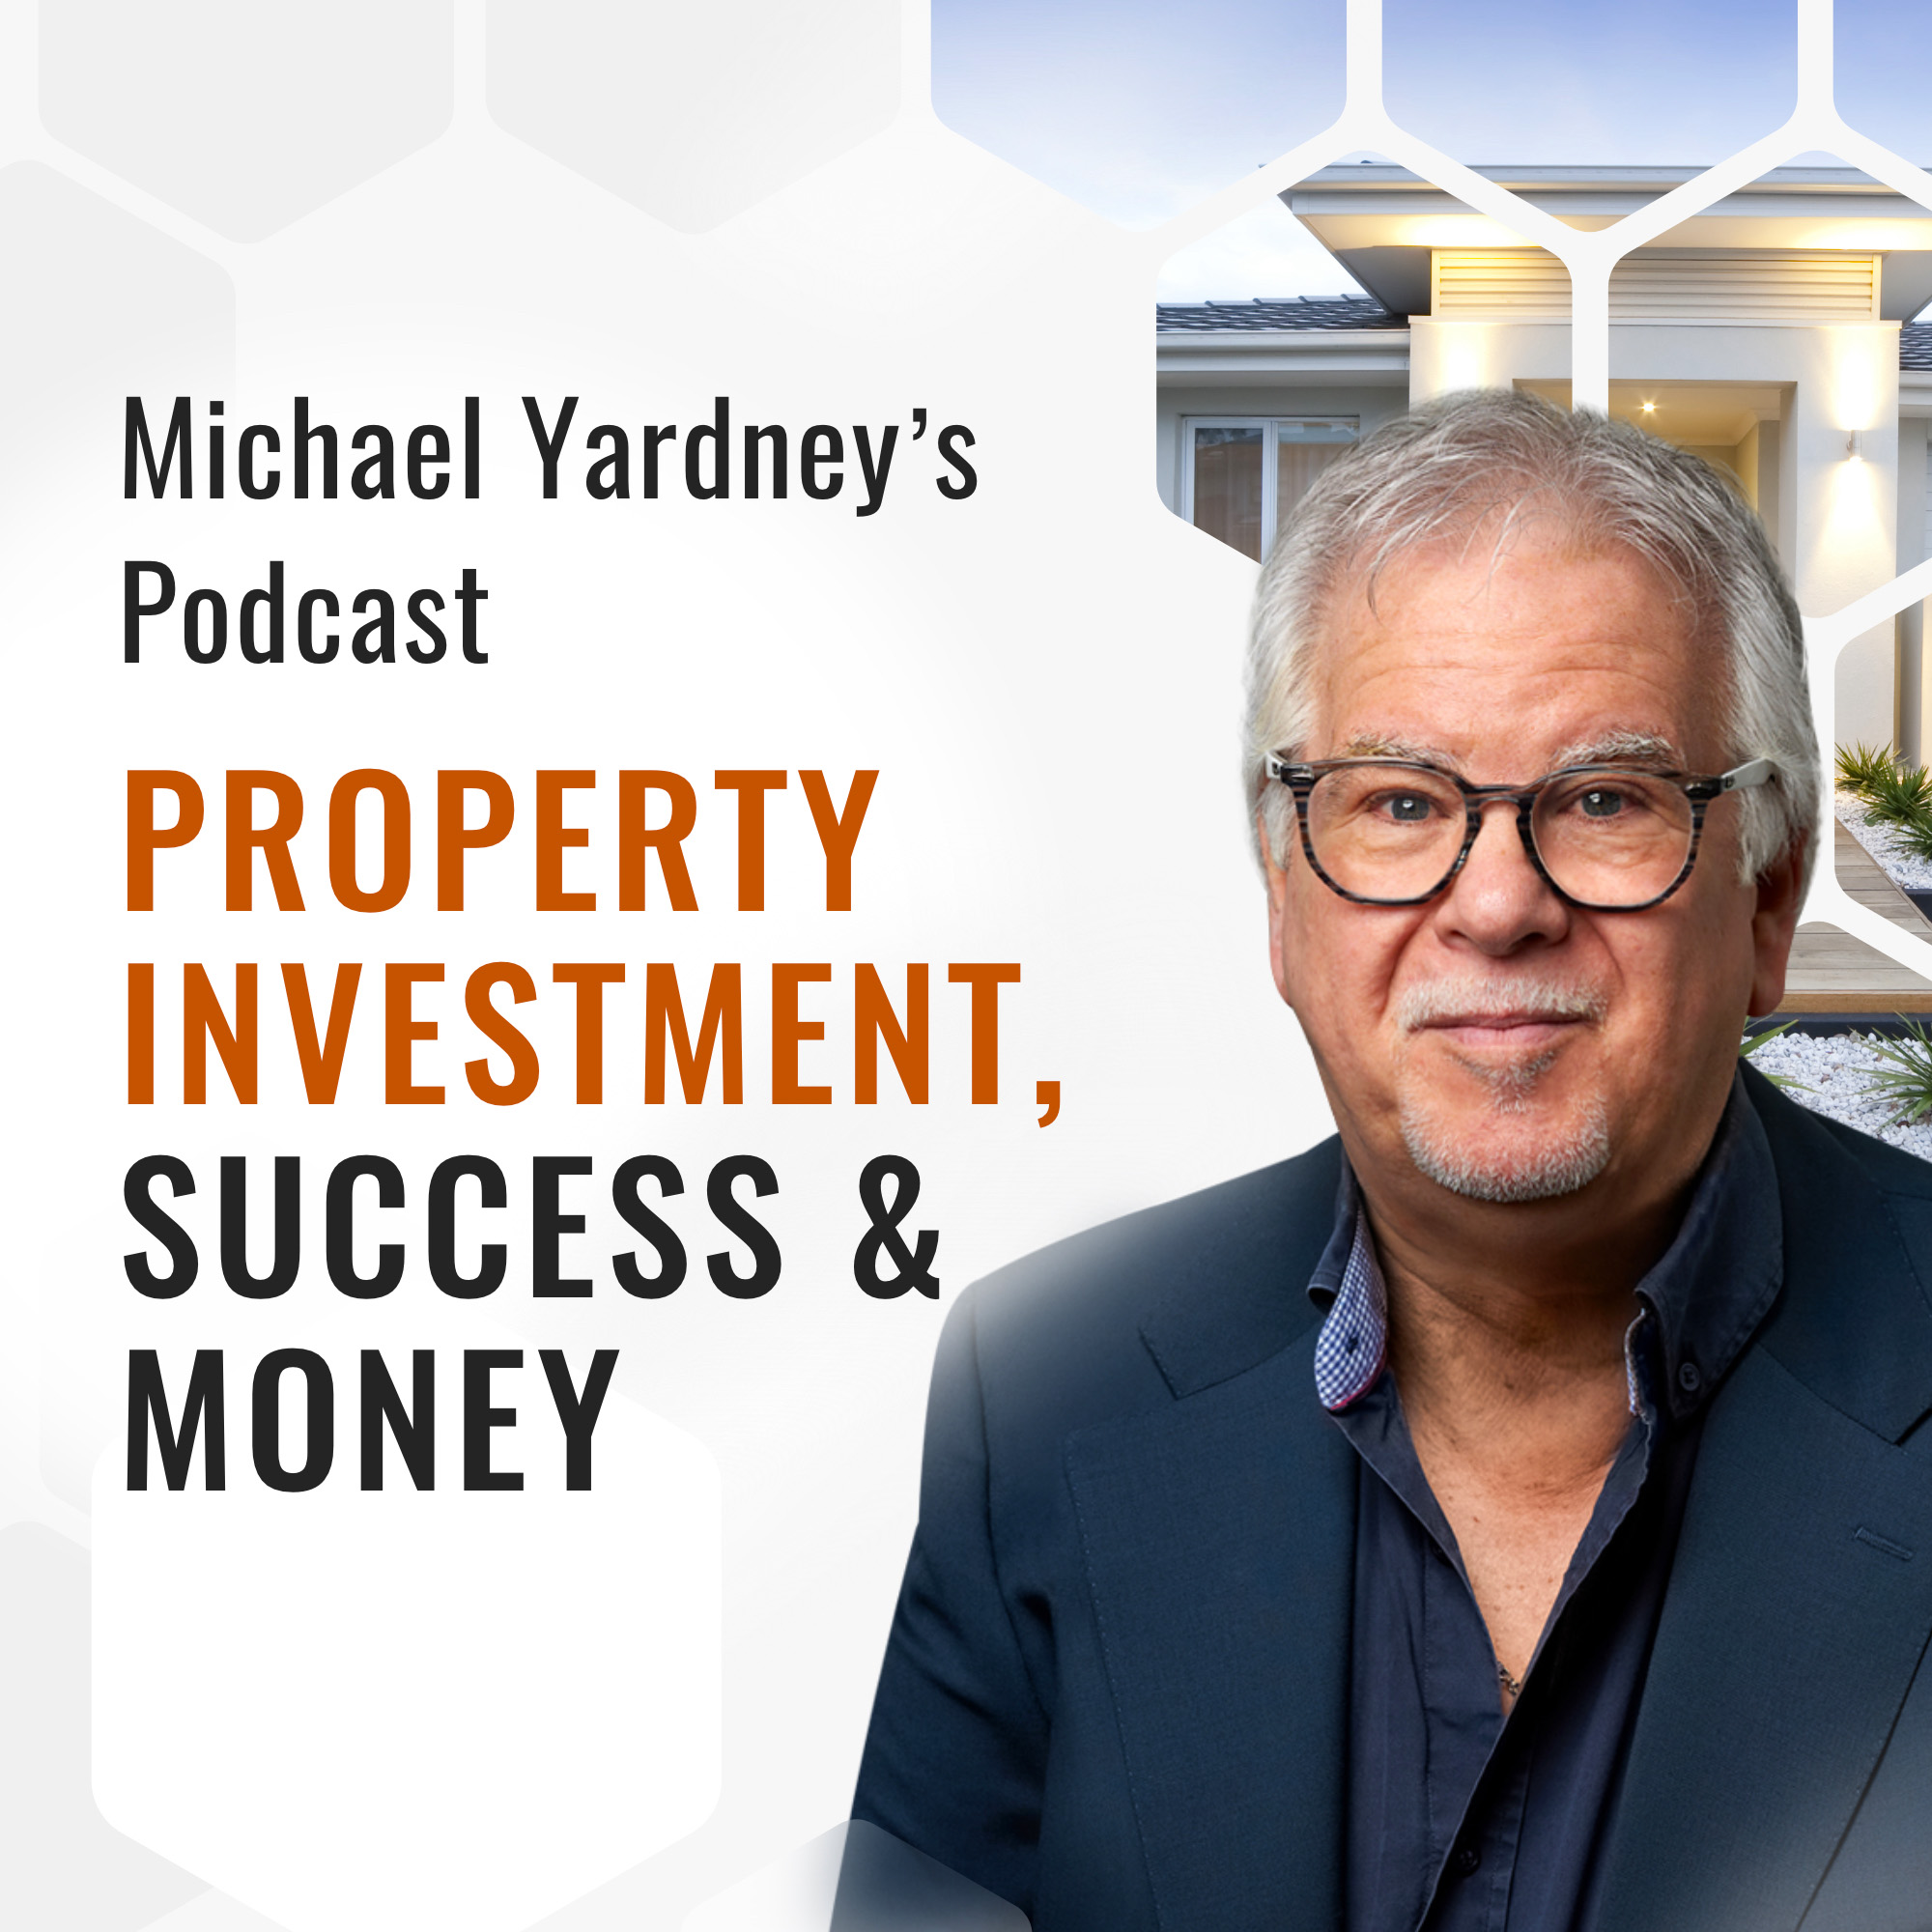 The Michael Yardney Podcast | Property Investment, Success & Money show art